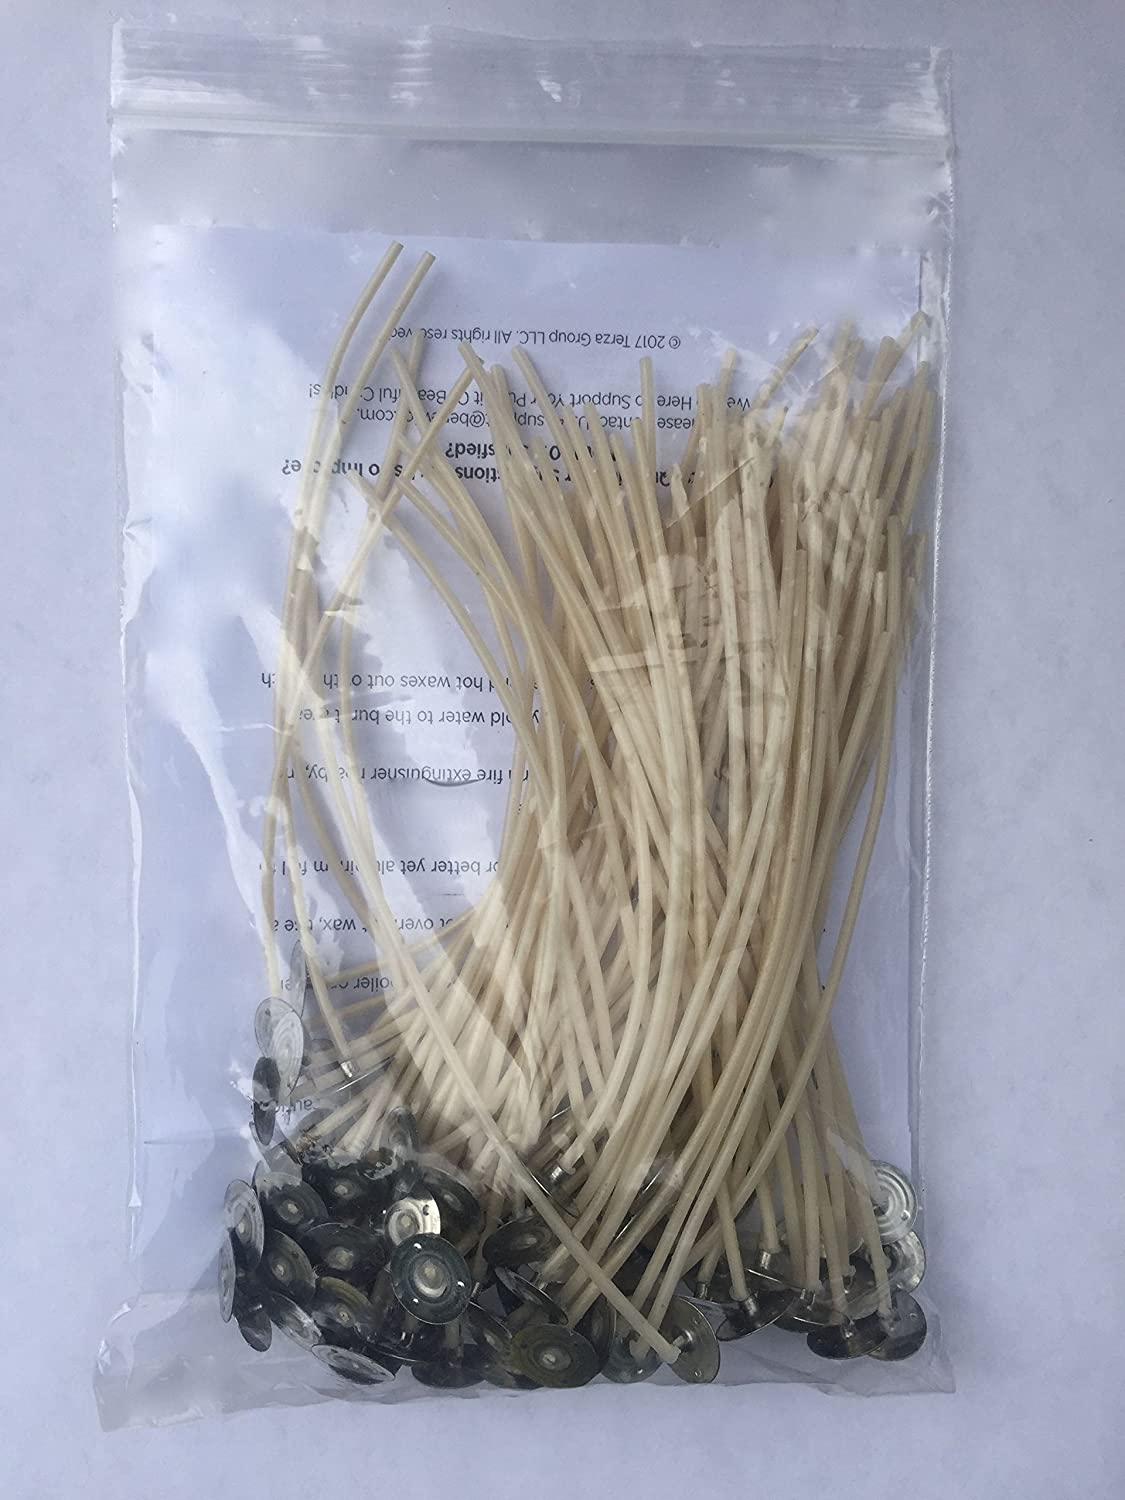 #1 One Reason For Bad Candles, Wrong Wick Diameter. 100 WICKS. MEDIUM WICK DIAMETER. Ideal for Candle Container Opening Of 1 3/4 Inches to less than 2 1/2 inches. 6 Inch Long. Made in USA. Benewick LLC